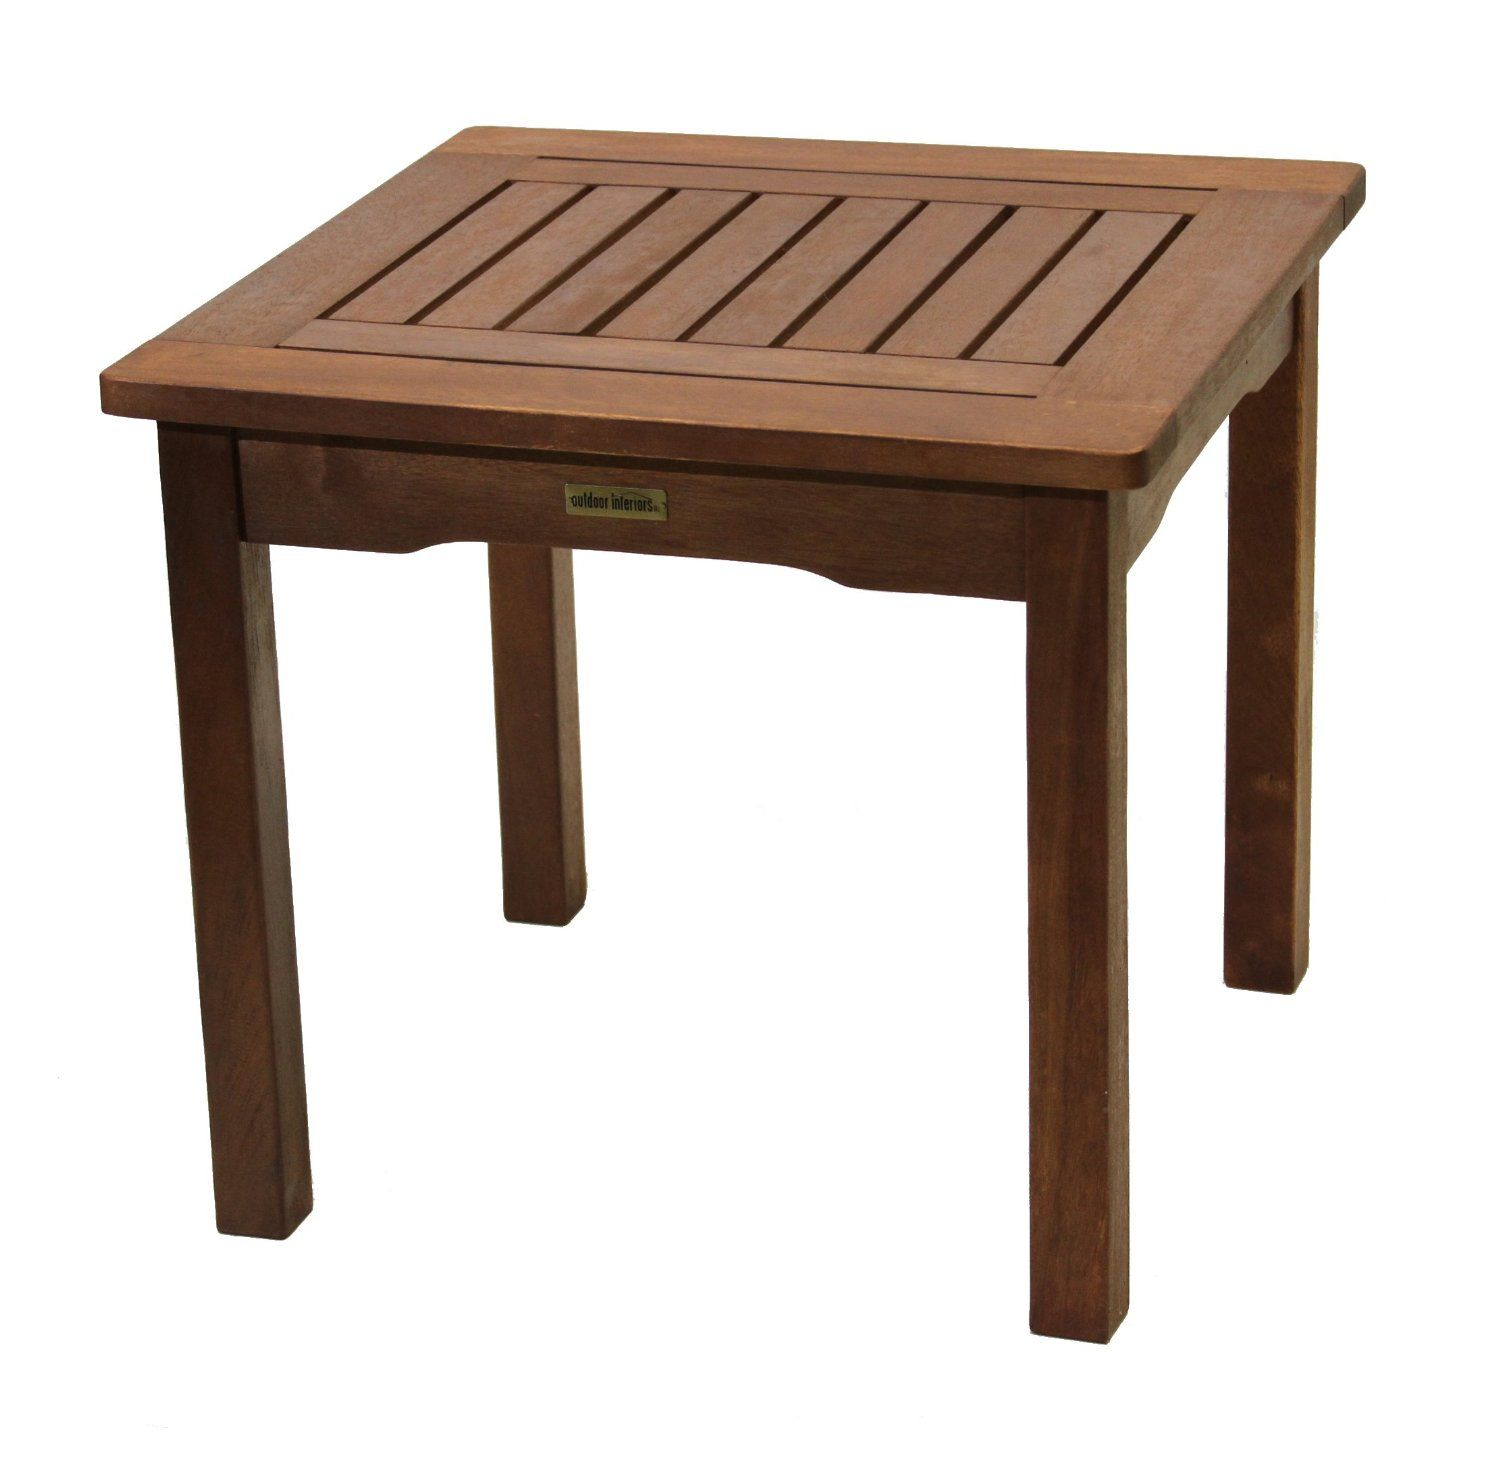 outdoor interiors eucalyptus end table patio accent tables side lawn garden blue living room chairs pier one imports locations marble white pottery barn dishes collapsible coffee